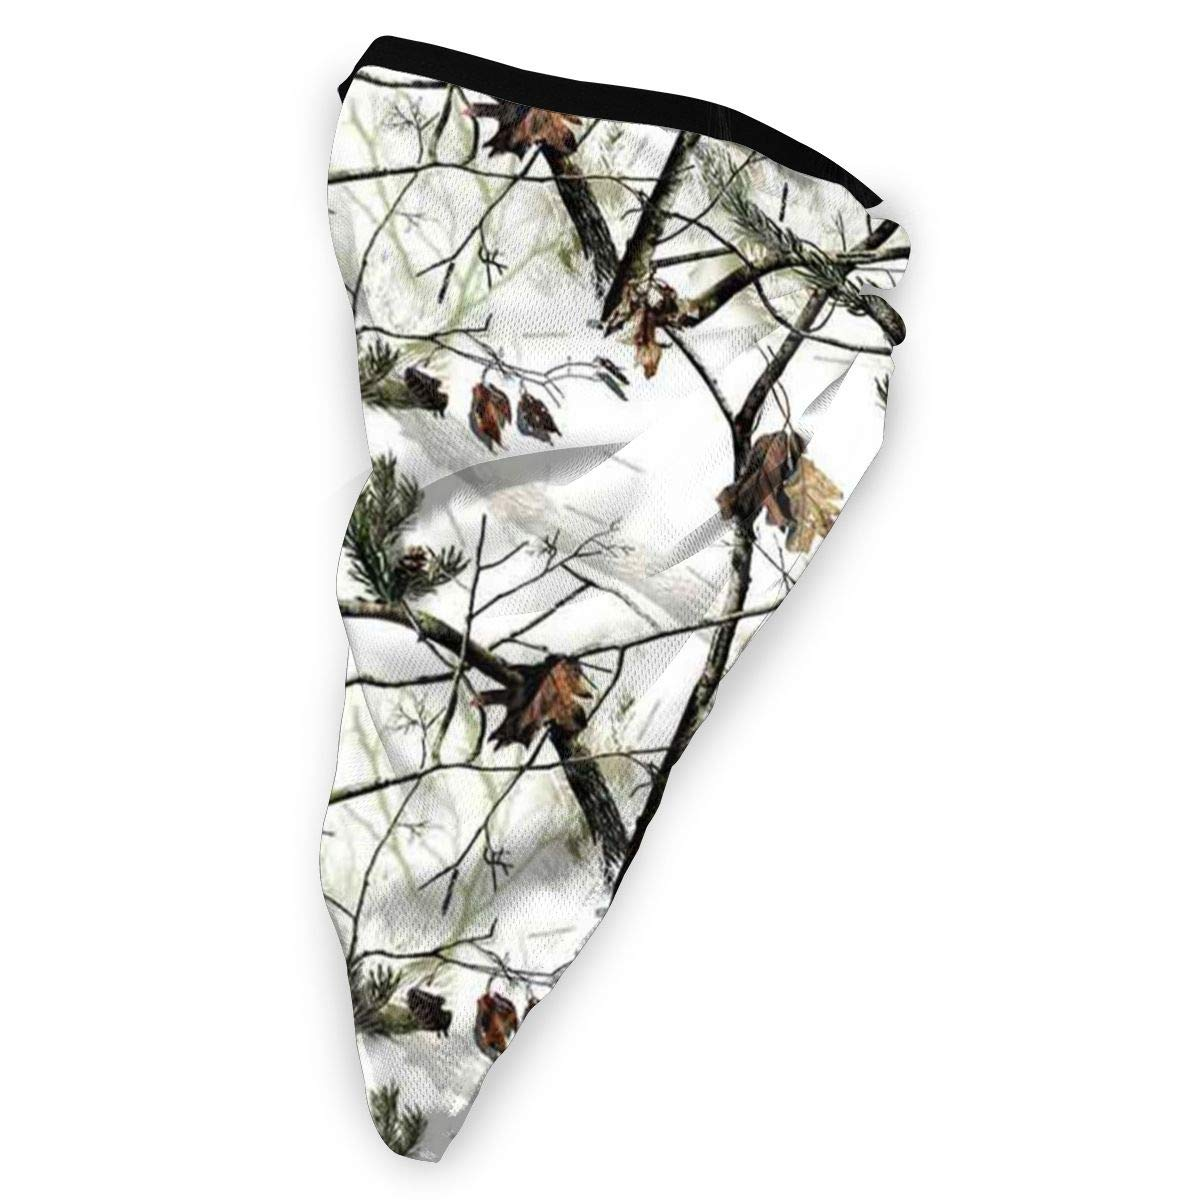 White Realtree Camo Neck Gaiter Warmer Windproof Face Mask Scarf Outdoor Sports Mask